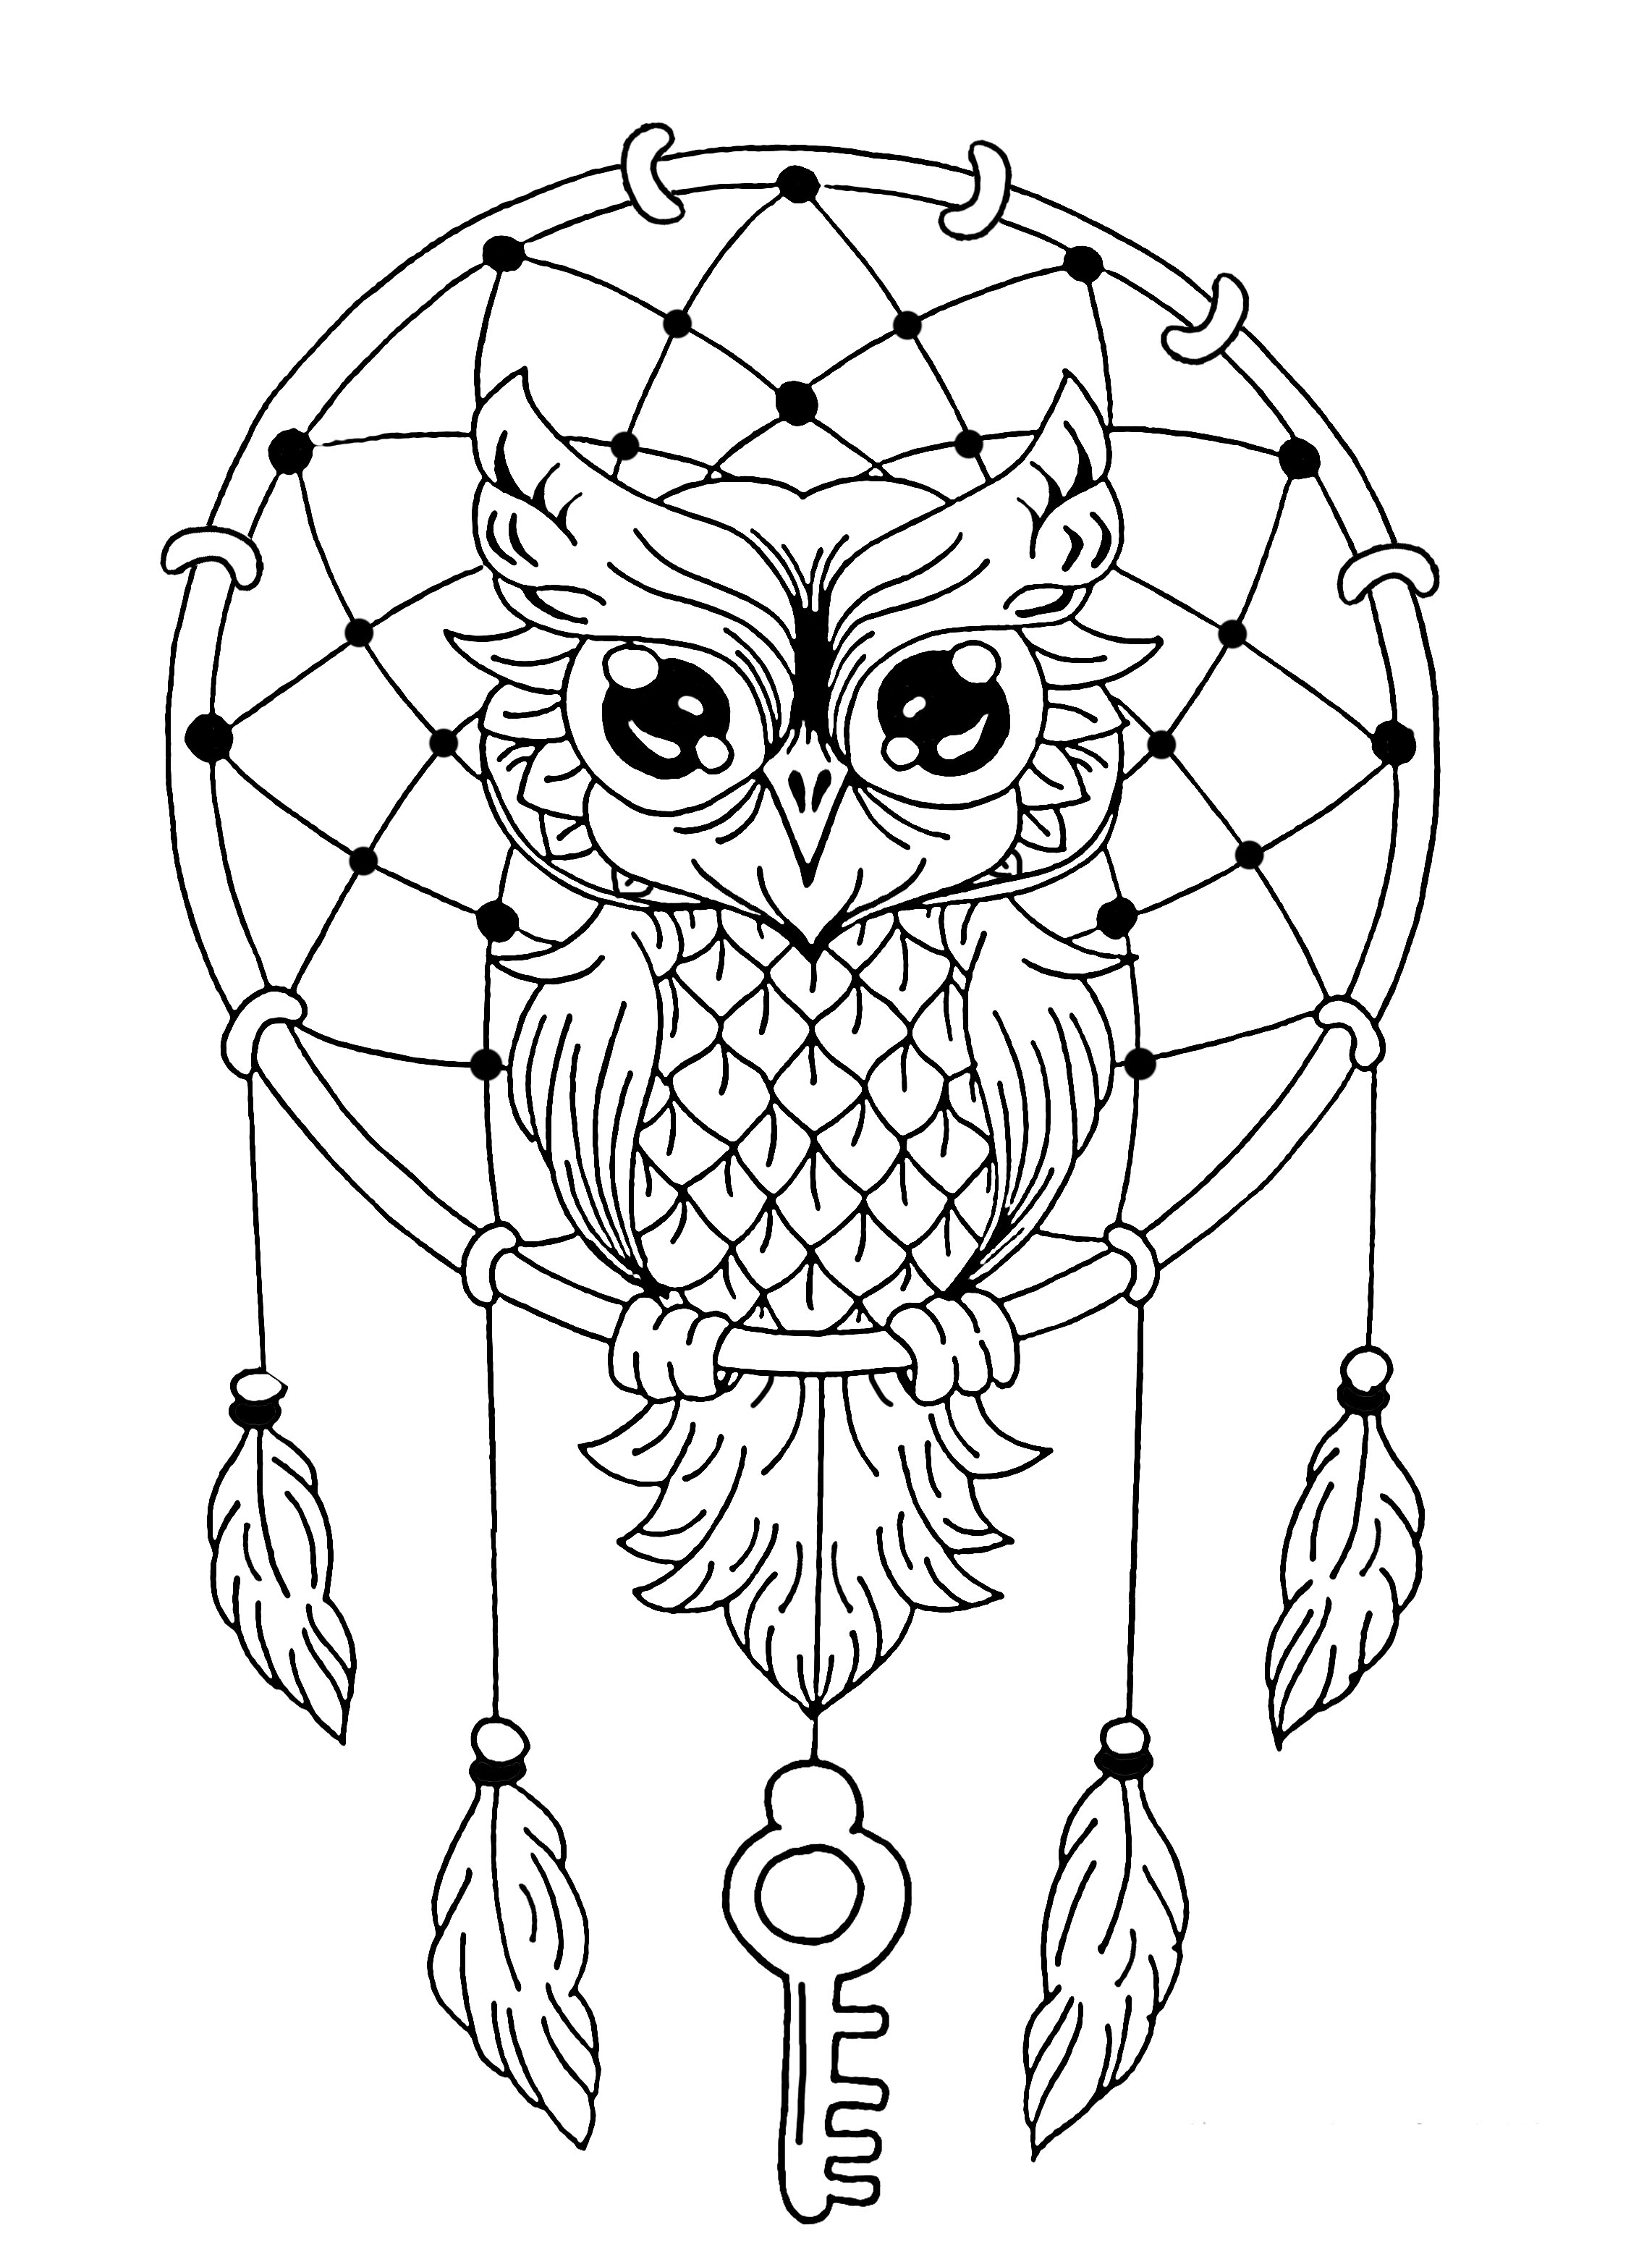 owl coloring pages for kids free printable owl coloring pages for kids cool2bkids owl coloring for kids pages